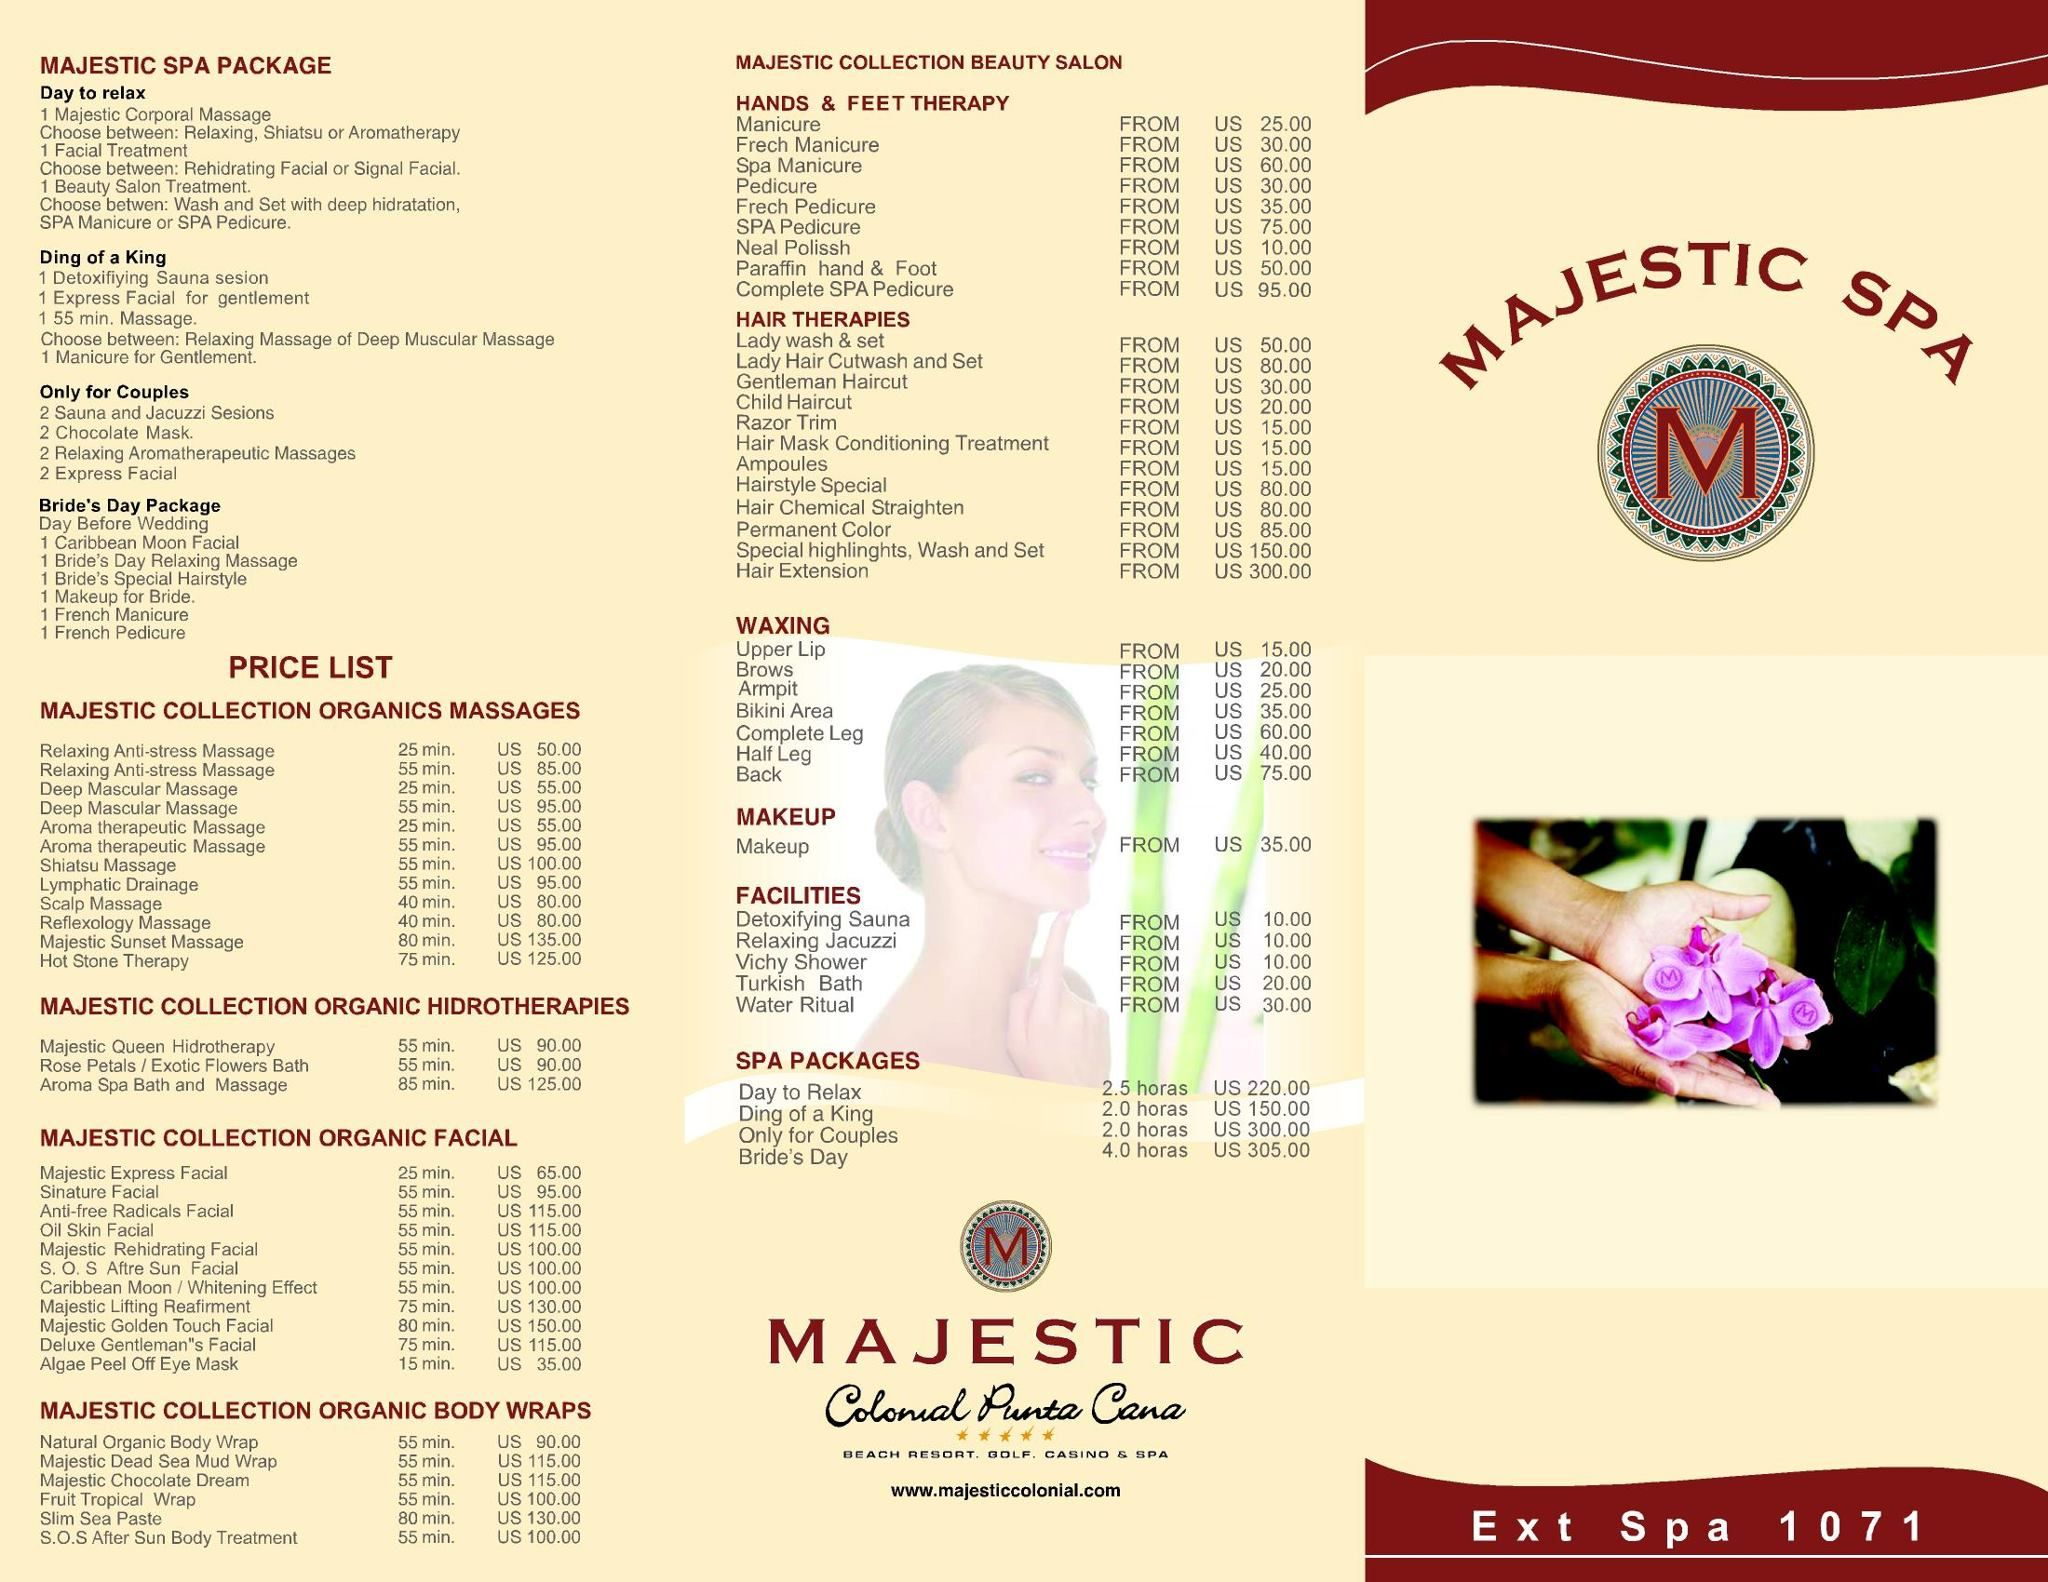 Majestic Colonial Spa Brochure Destination Wedding